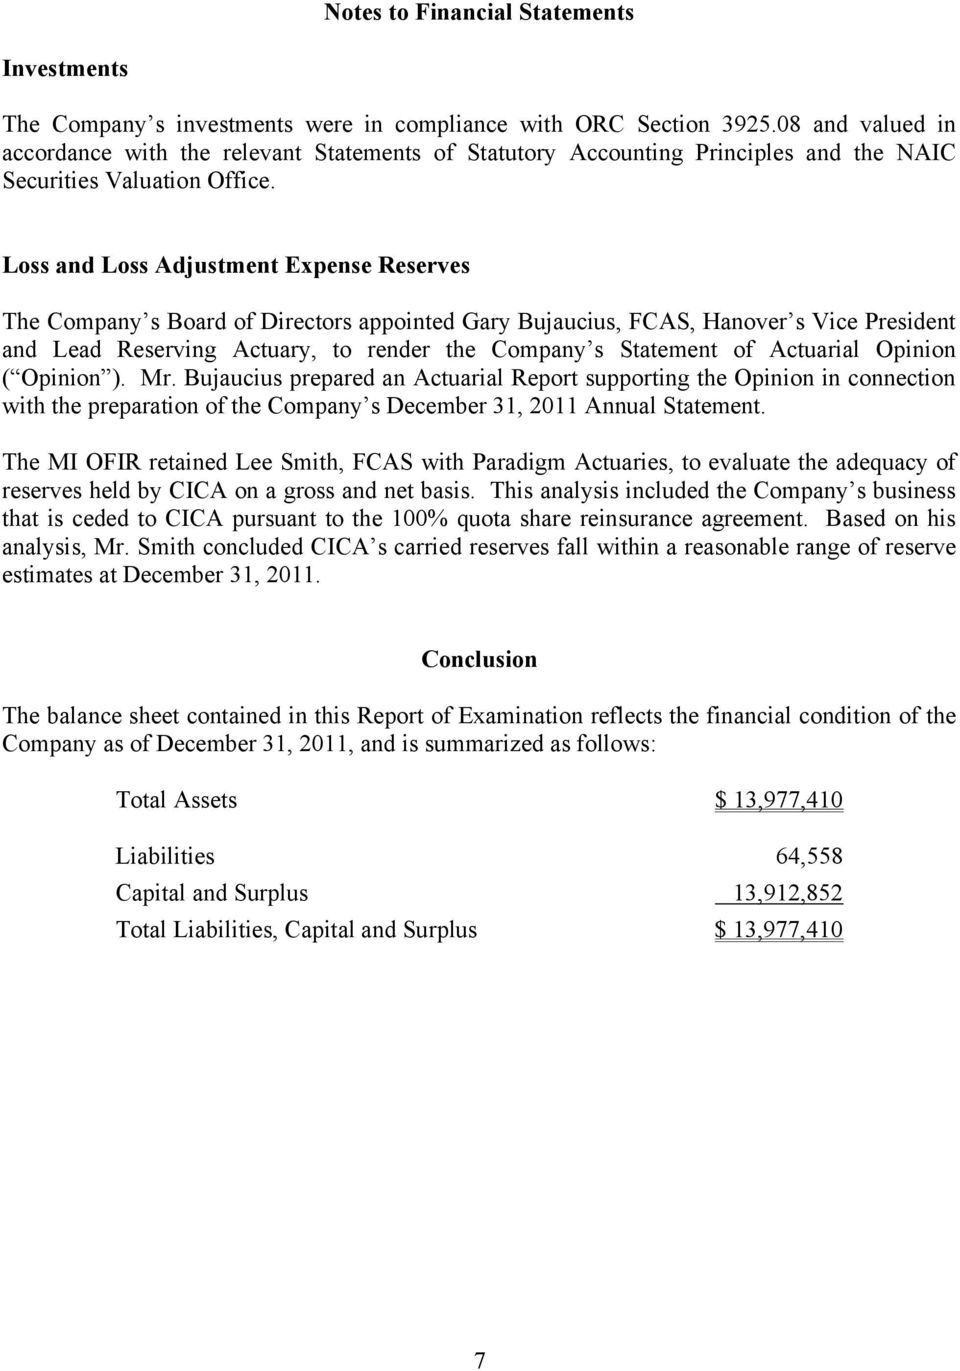 Loss and Loss Adjustment Expense Reserves The Company s Board of Directors appointed Gary Bujaucius, FCAS, Hanover s Vice President and Lead Reserving Actuary, to render the Company s Statement of